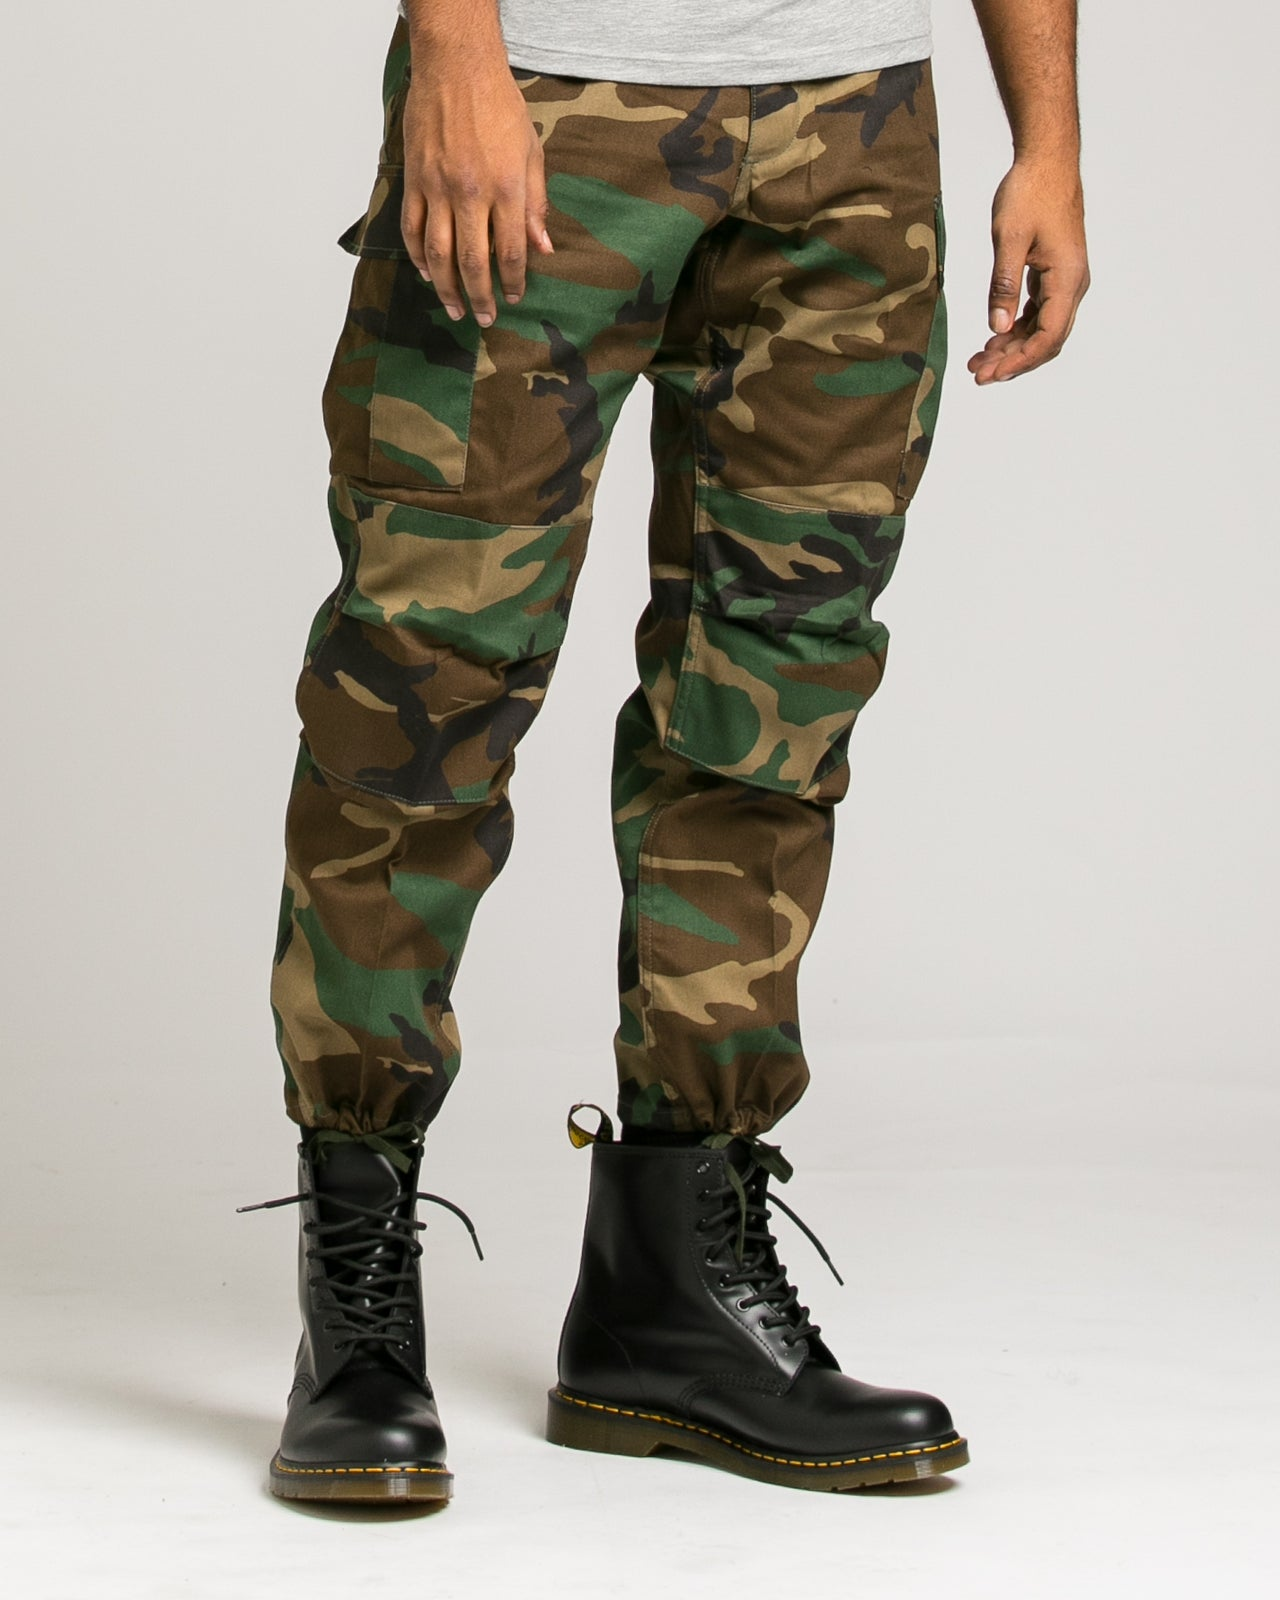 B.D.U. Pants - Color: Woodland Camo | Green